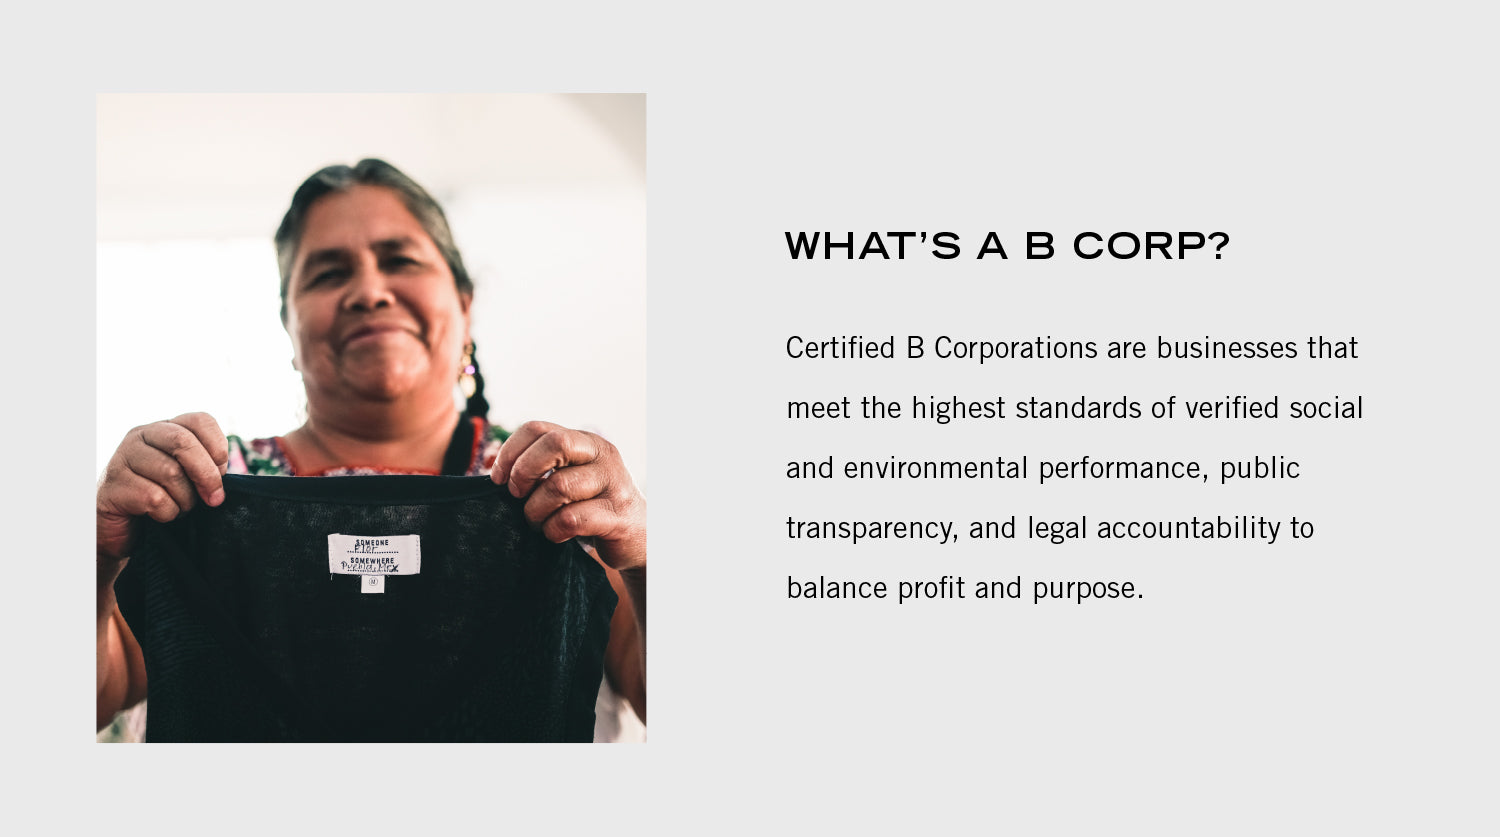 What's a B Corp? Certified B Corporations are businesses that meet the higher standard of verified social and environmental performance, public transparency, and legal accountability to balance profit and purpose.